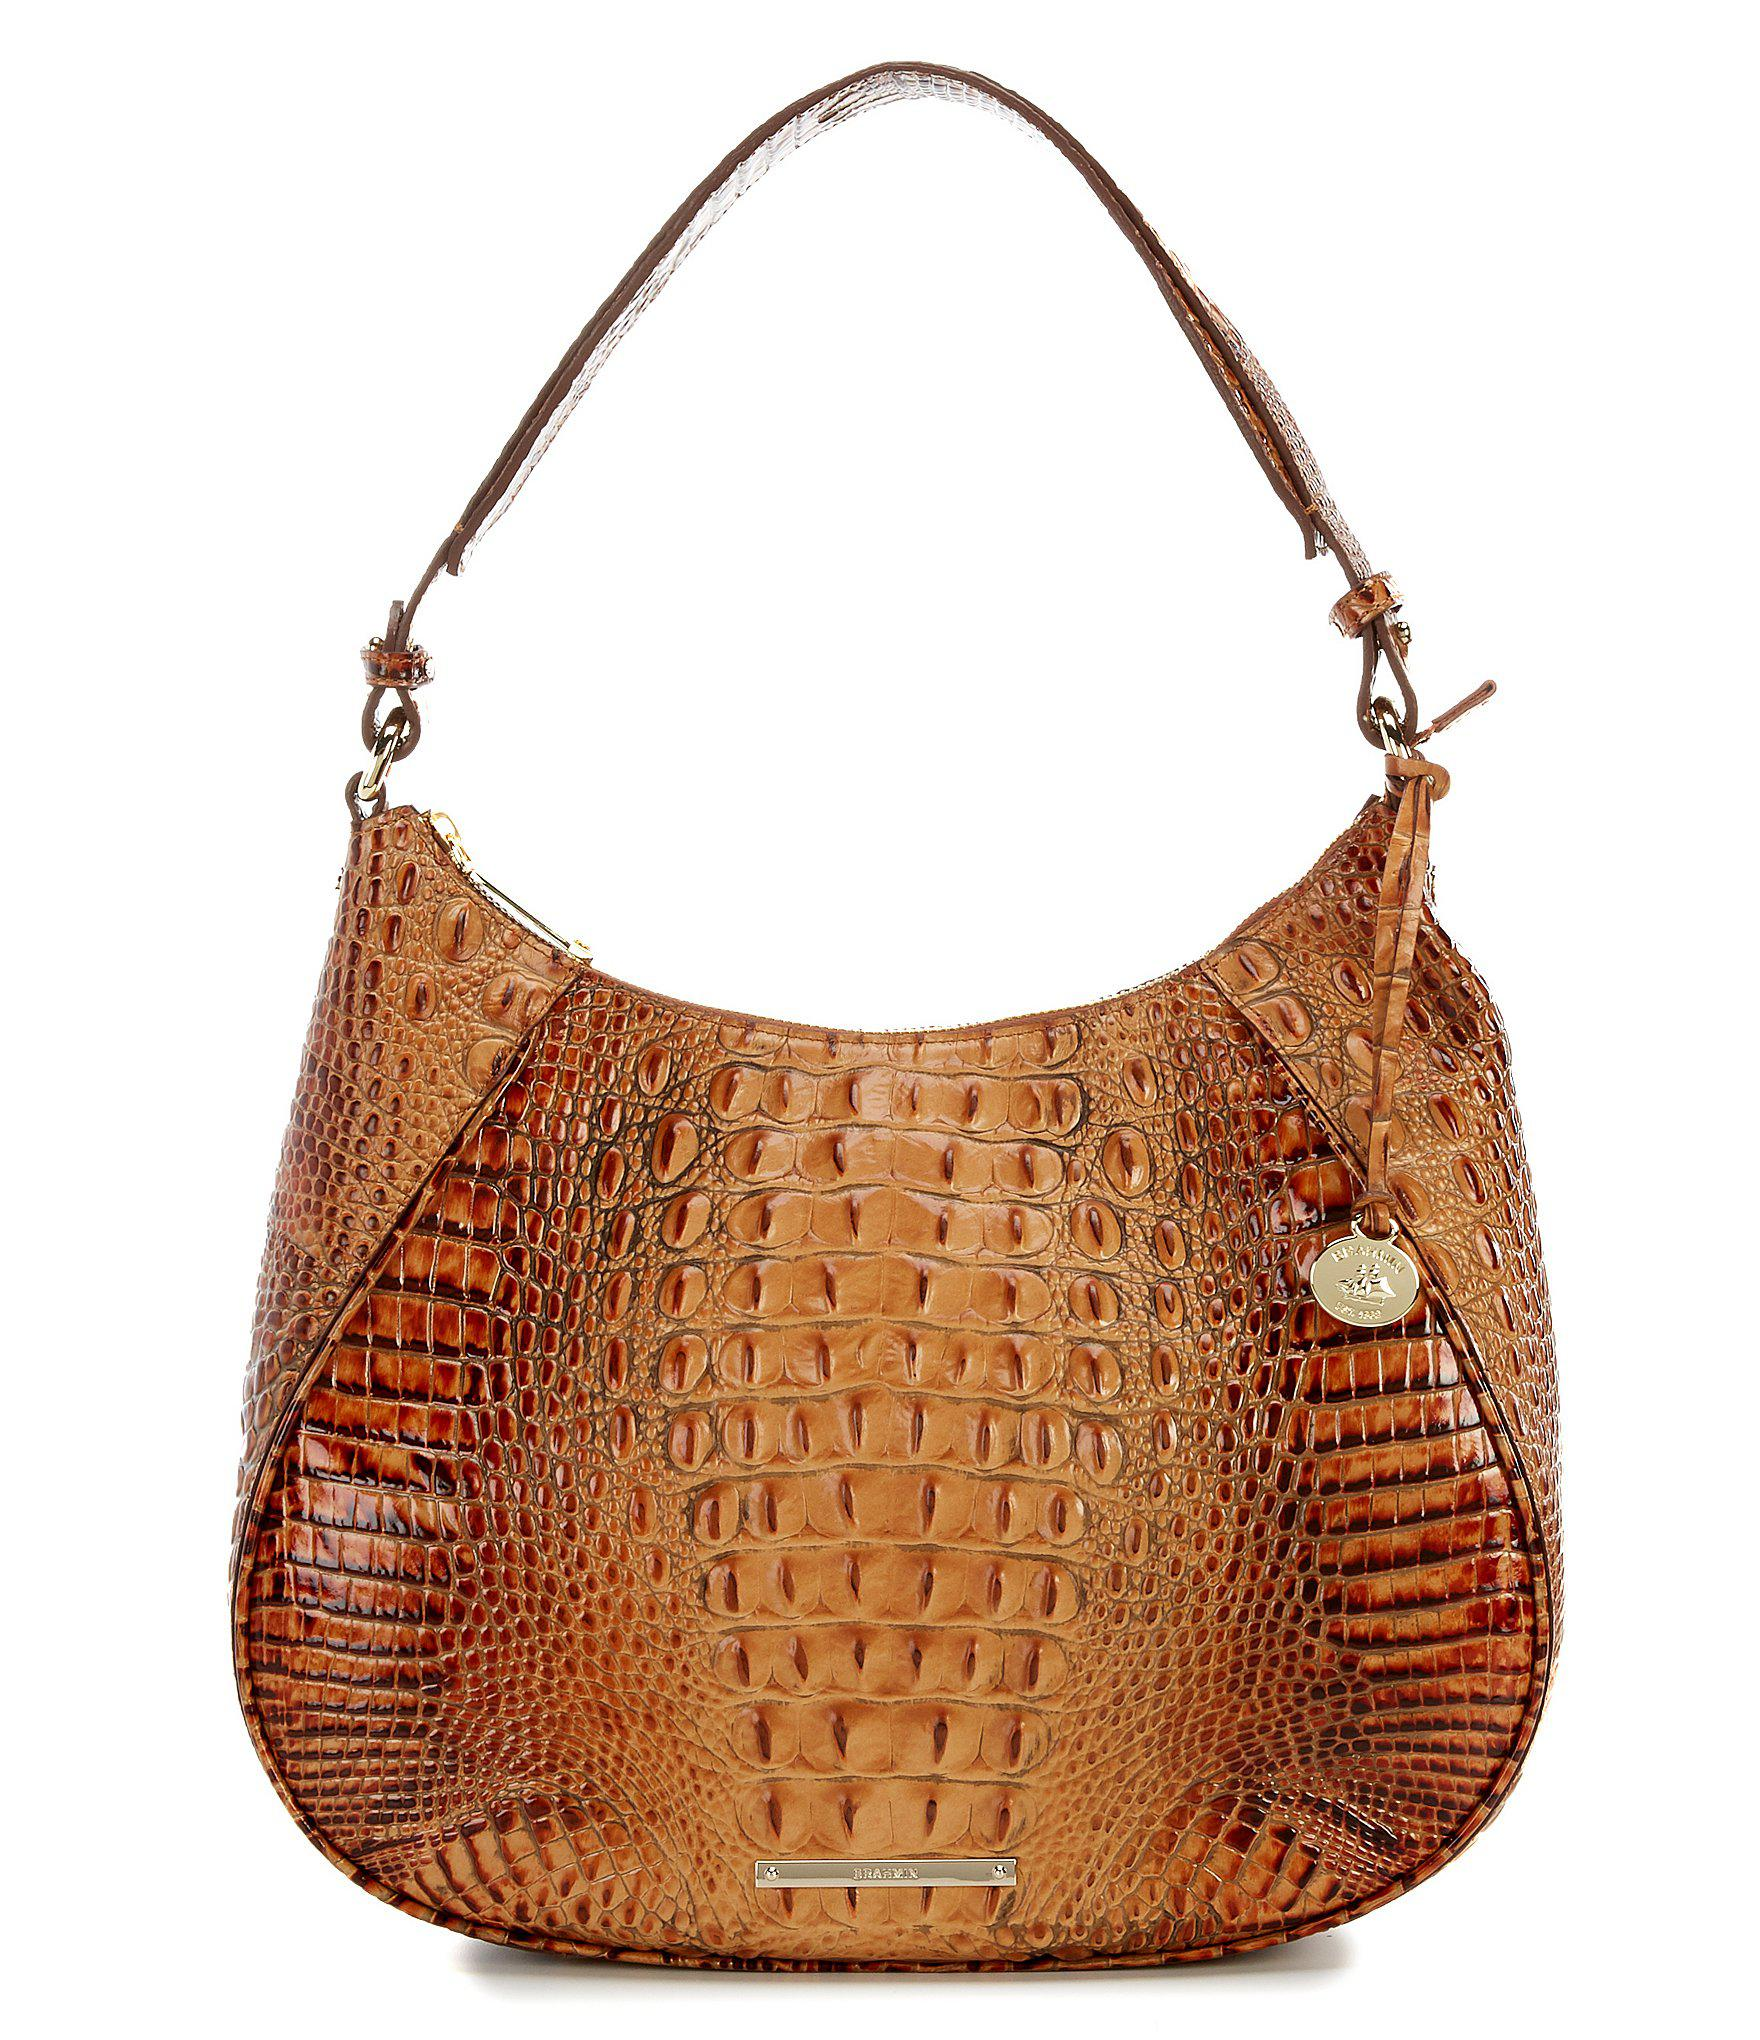 bb7911cd5fb6 Brahmin Toasted Almond Collection Amira Hobo Bag in Brown - Lyst